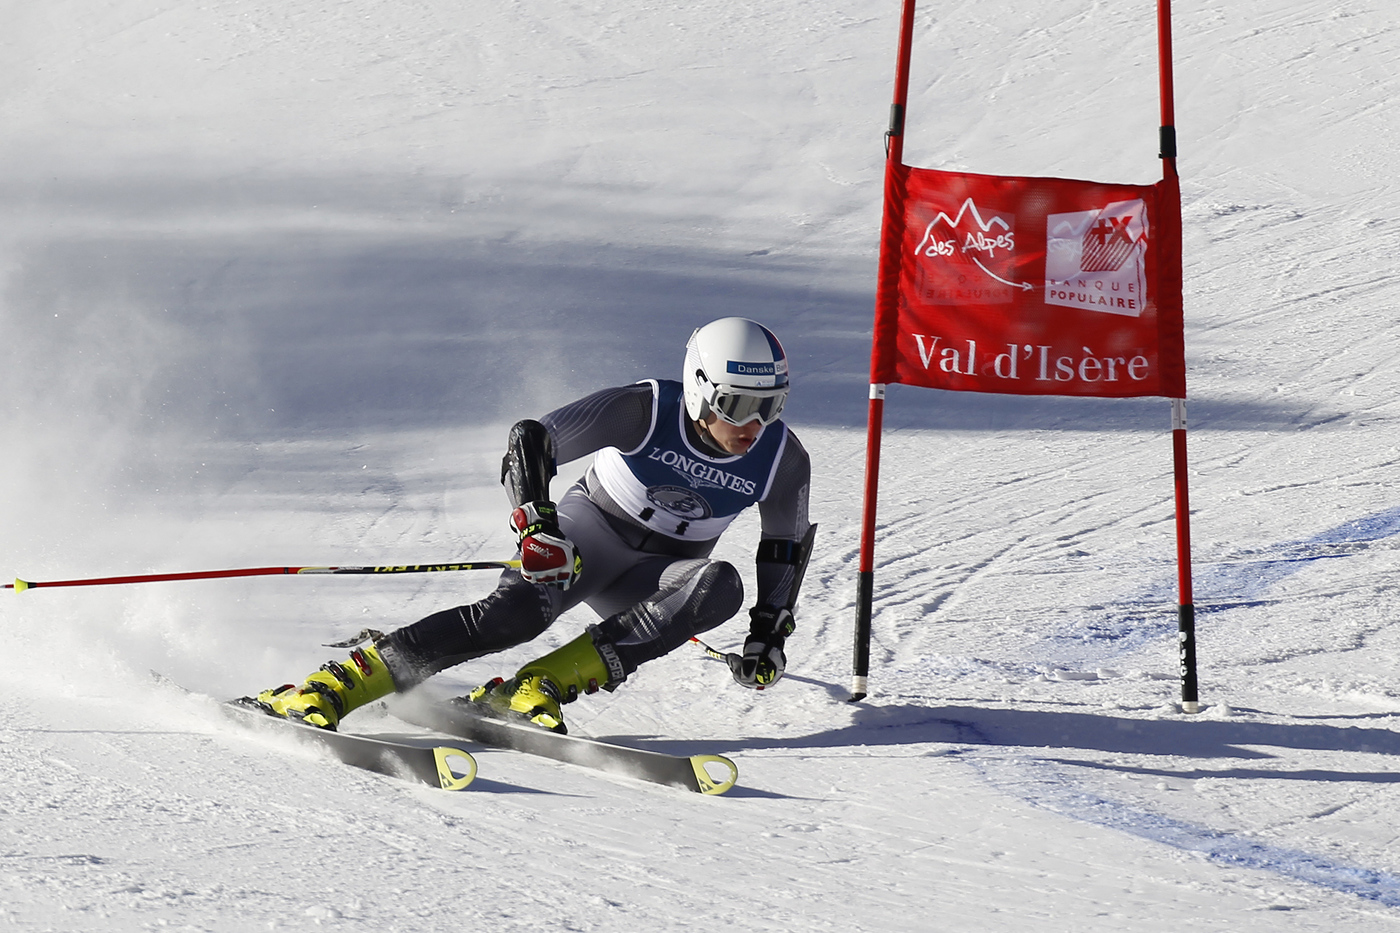 Longines Alpine Skiing Event: The Longines Future Ski Champion 2013 22